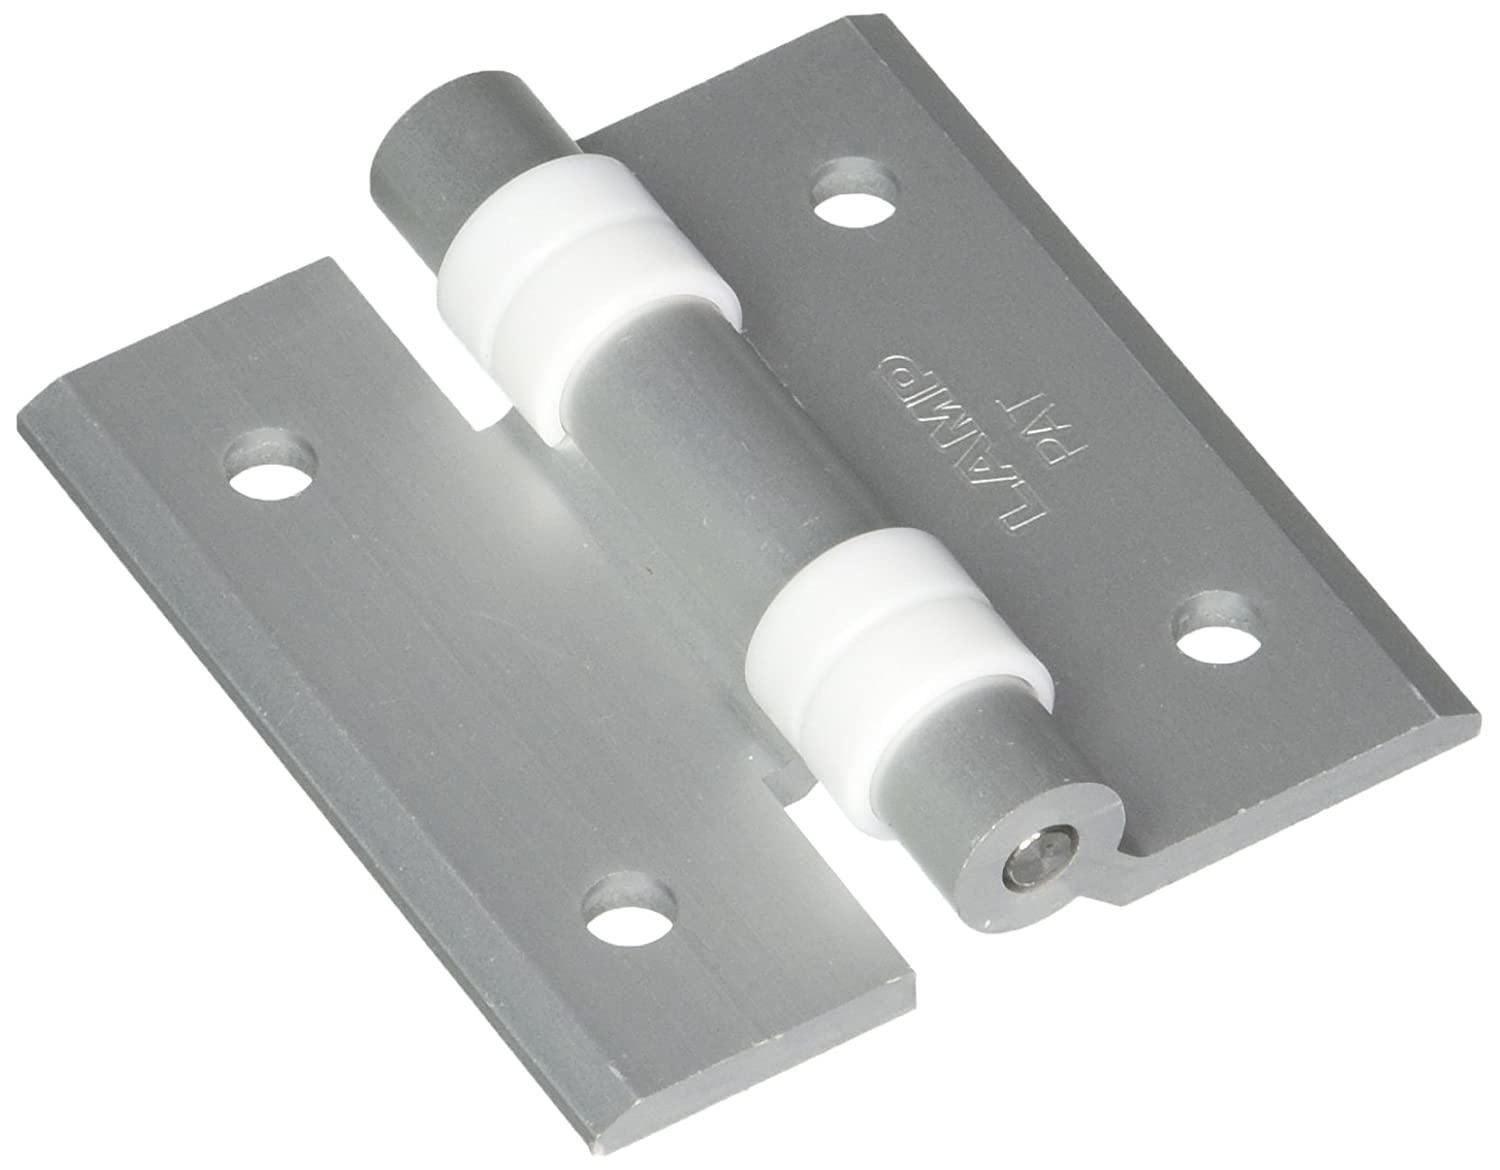 Sugatsune HG-CV65 Aluminum Clean Room Butt Hinge with Holes and Bushing, Anodized Finish, 3.5mm Leaf Thickness, 60mm Open Width, 5mm Pin Diameter, 65mm Height